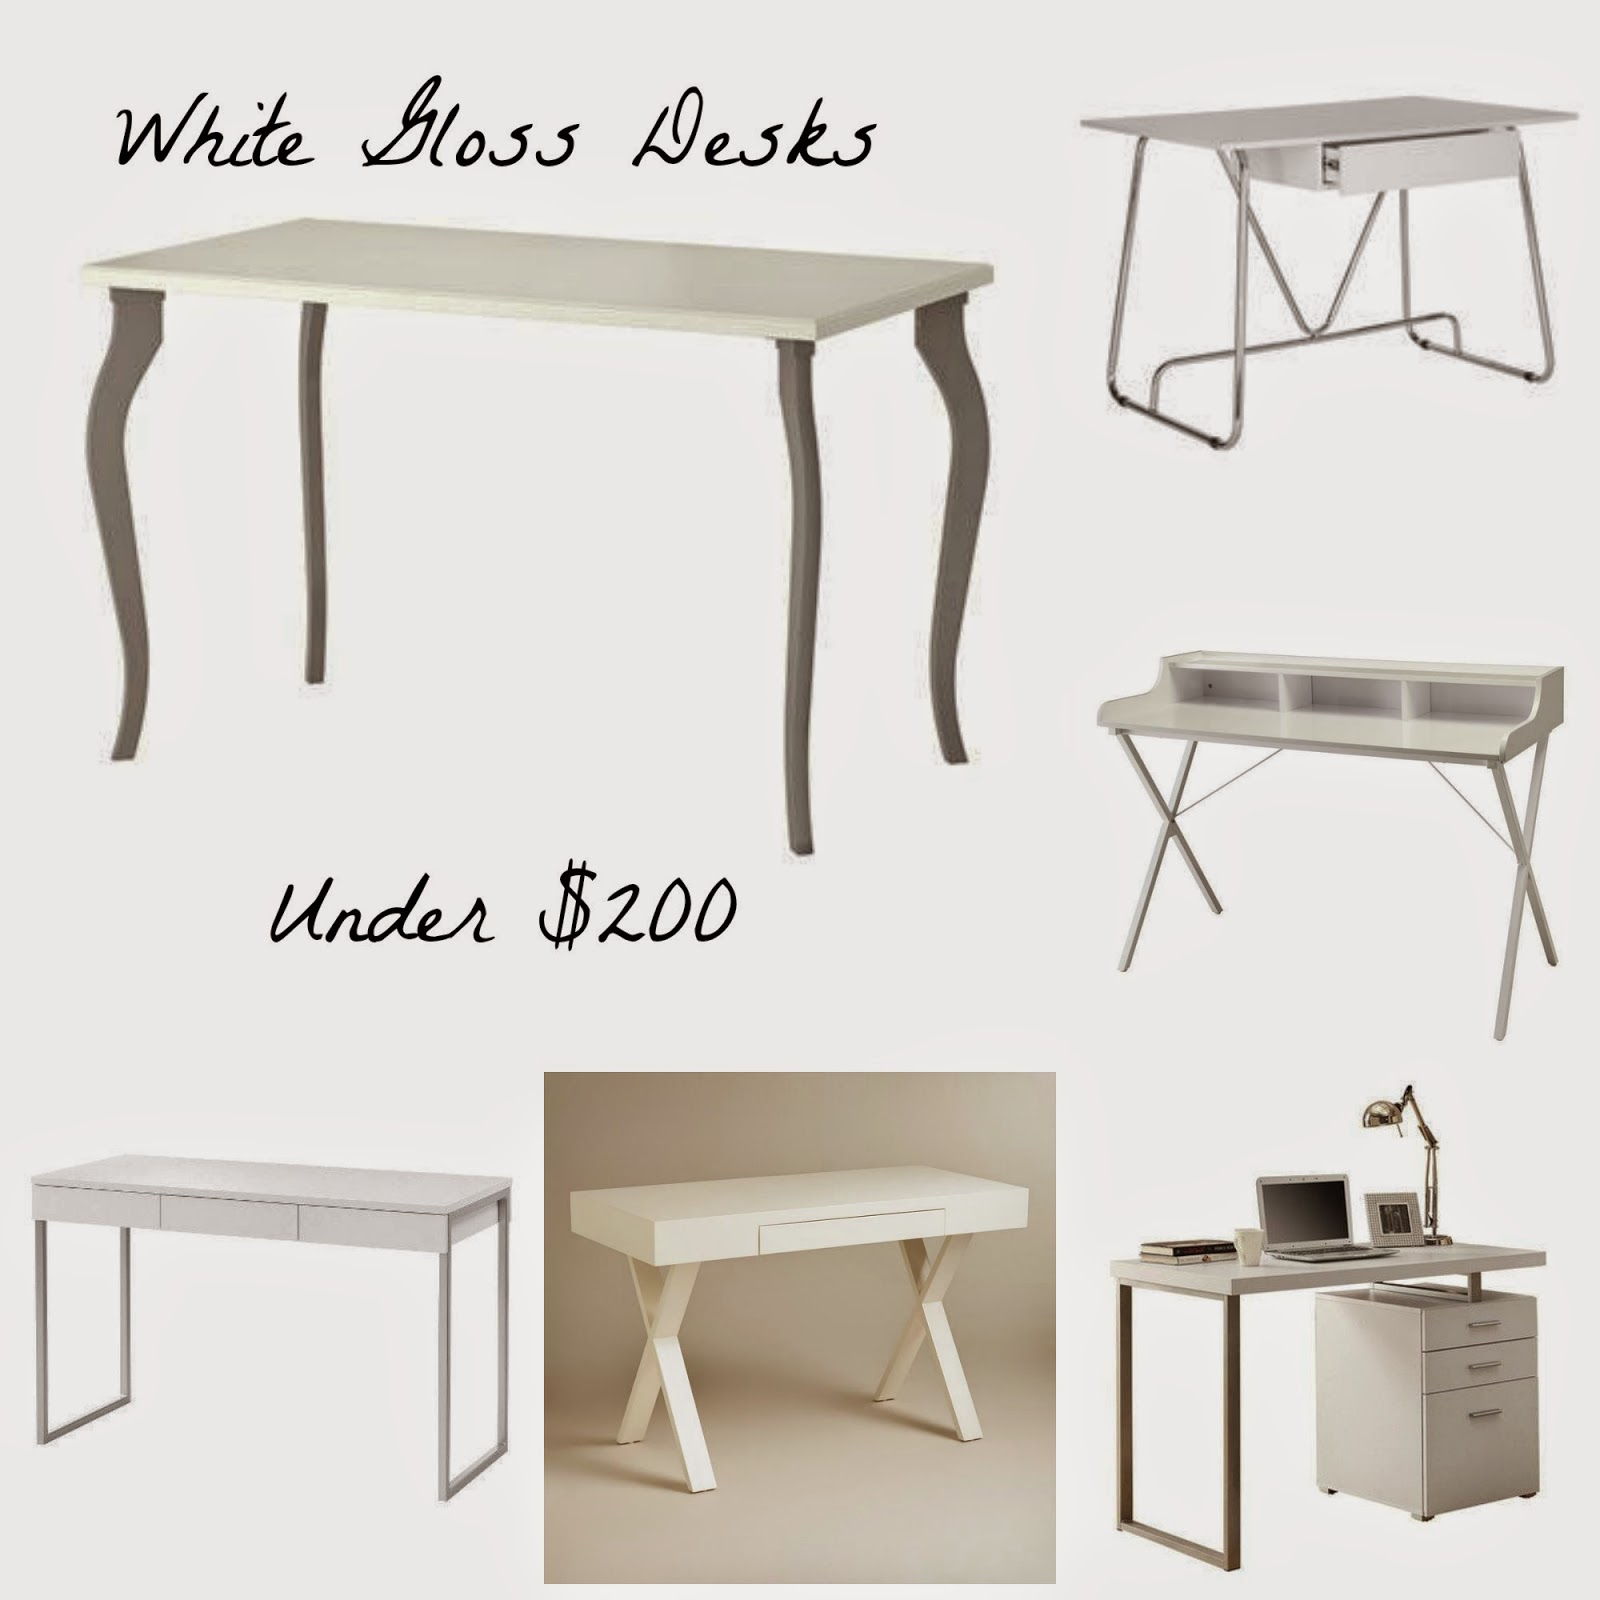 6 White Gloss Desks Under 200